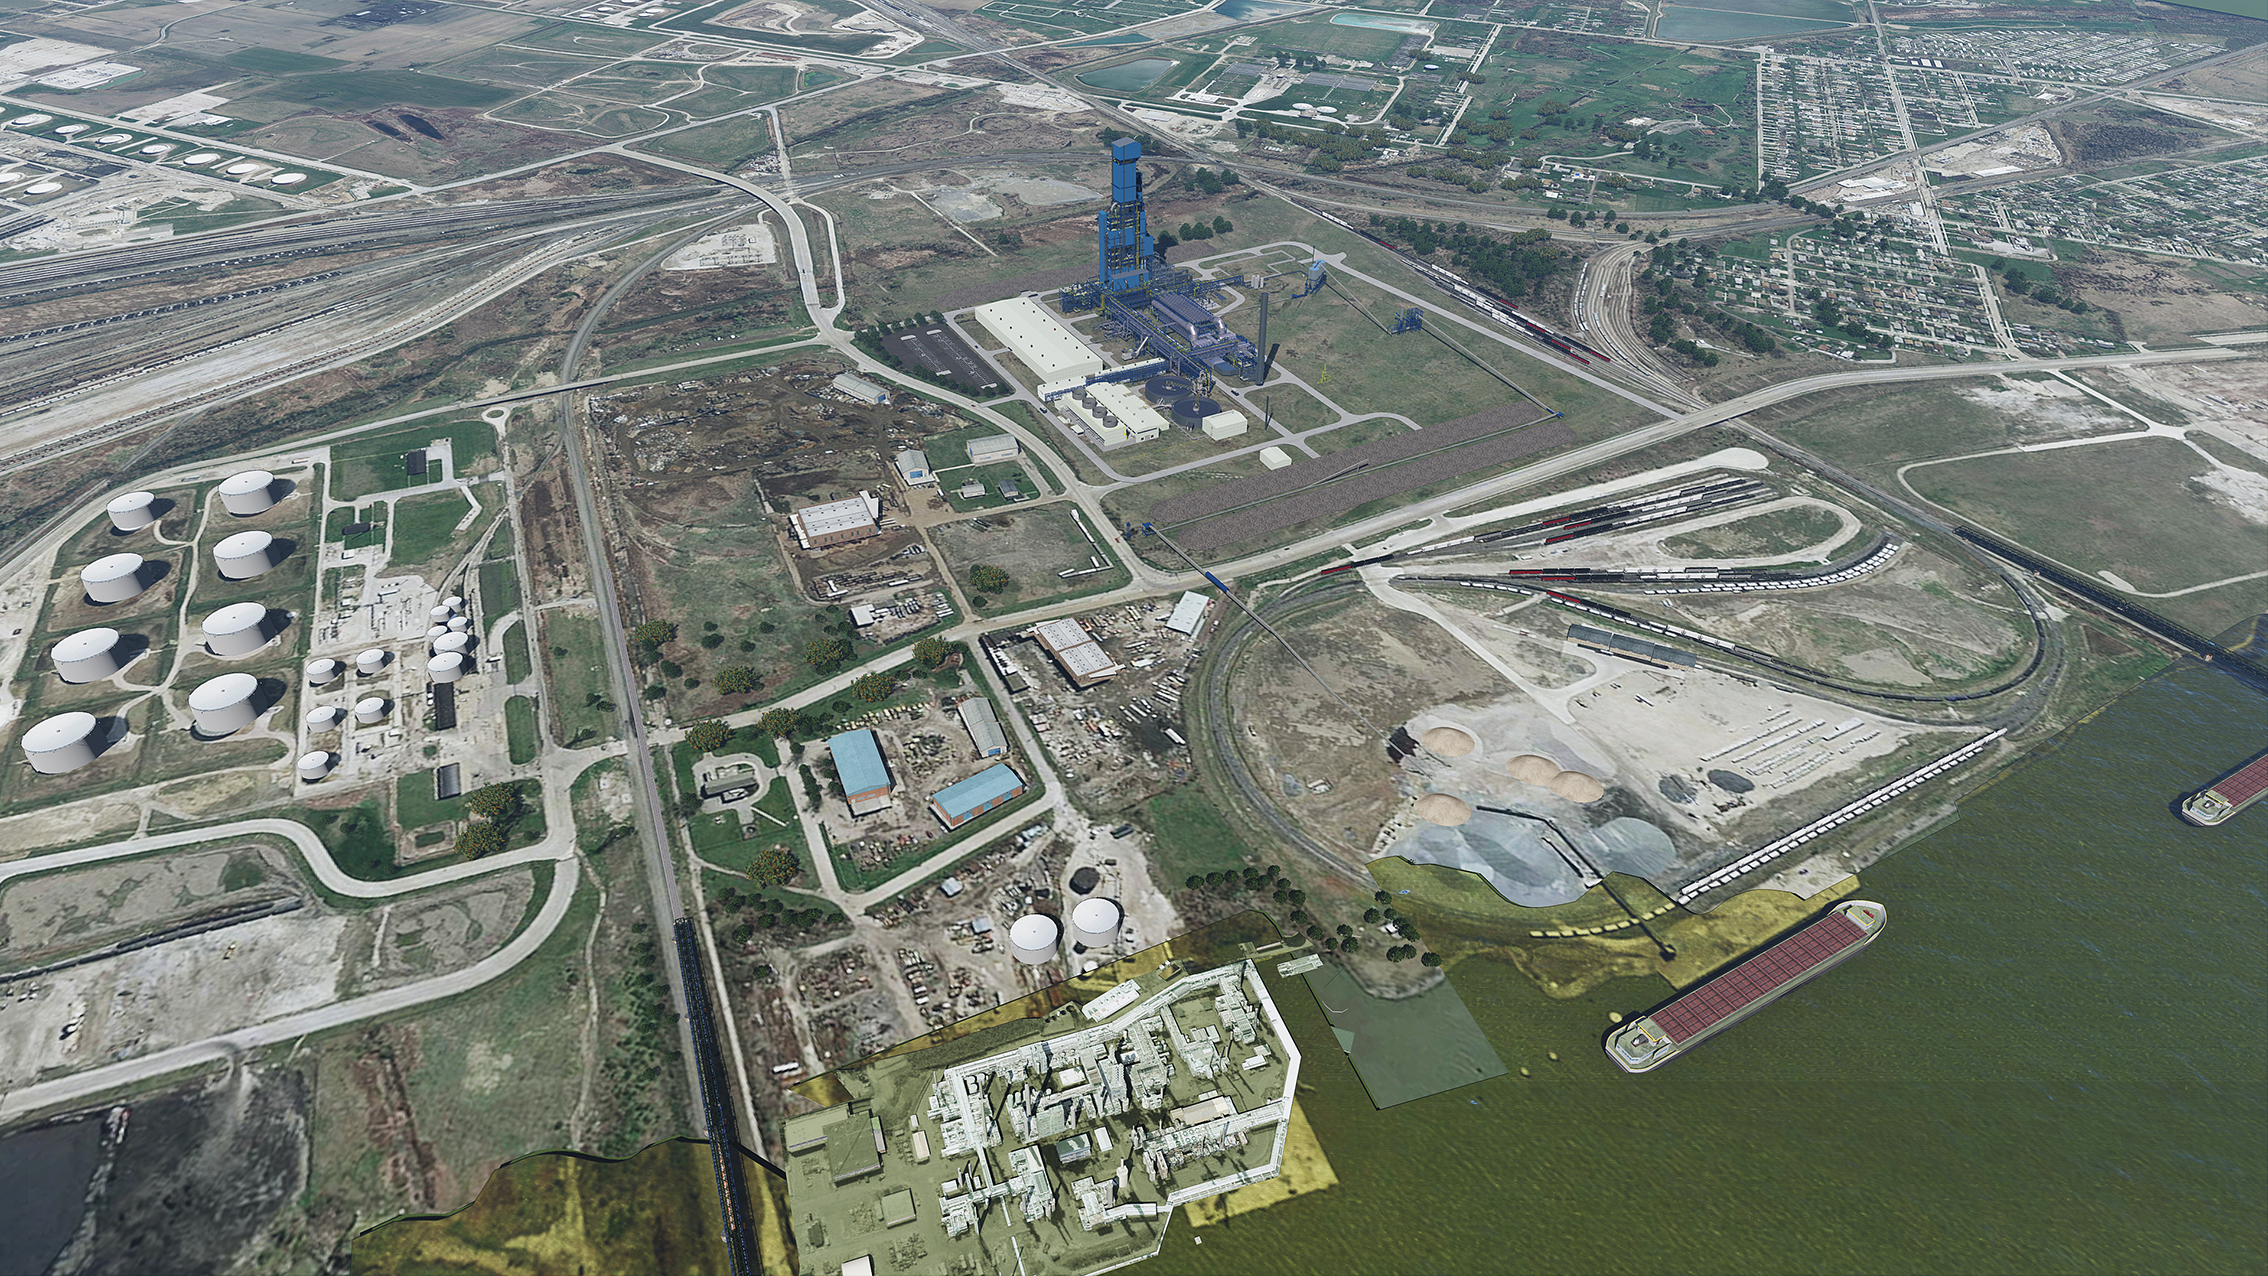 Caption: Render of future site at Port of Toledo, Credit: [Cleveland Cliffs]